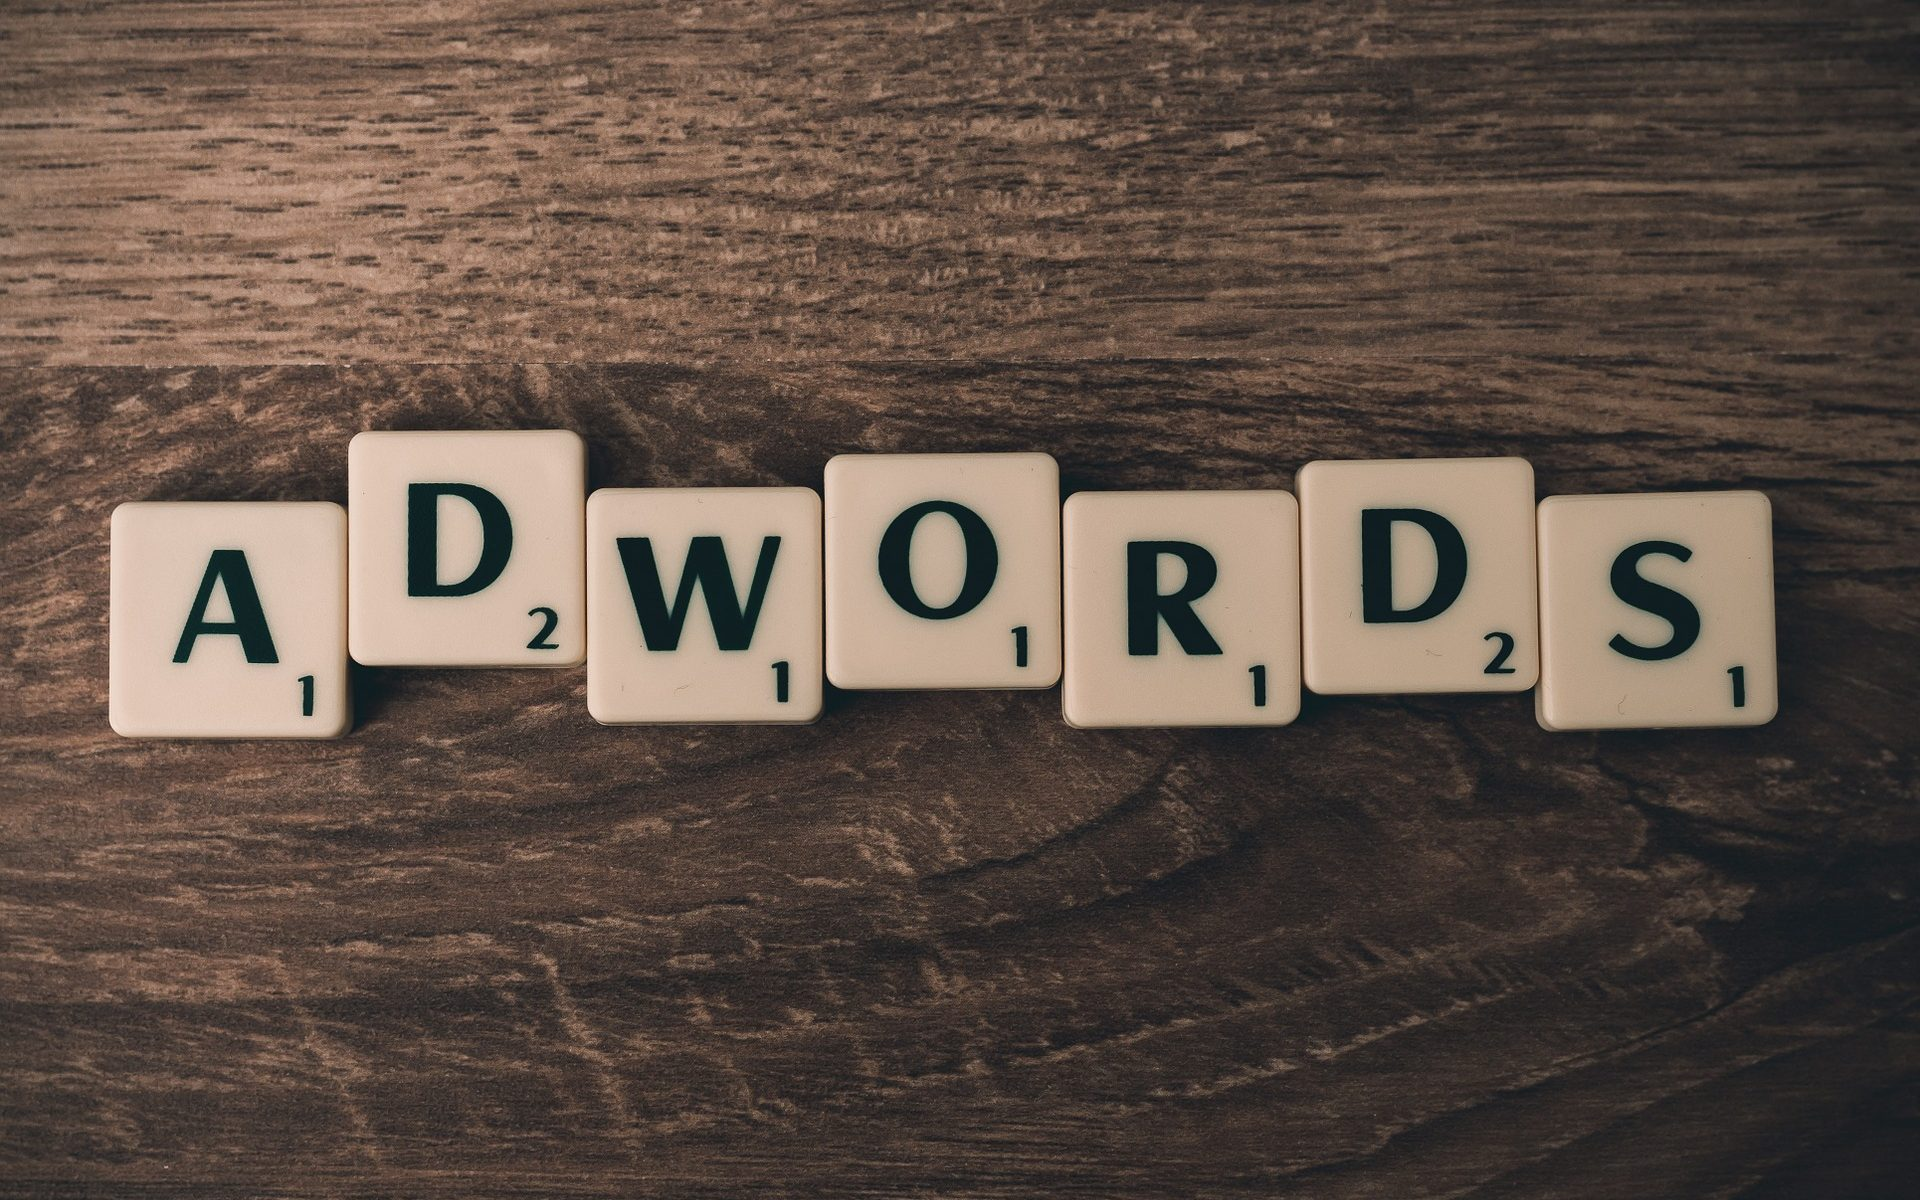 adwords letters on a table